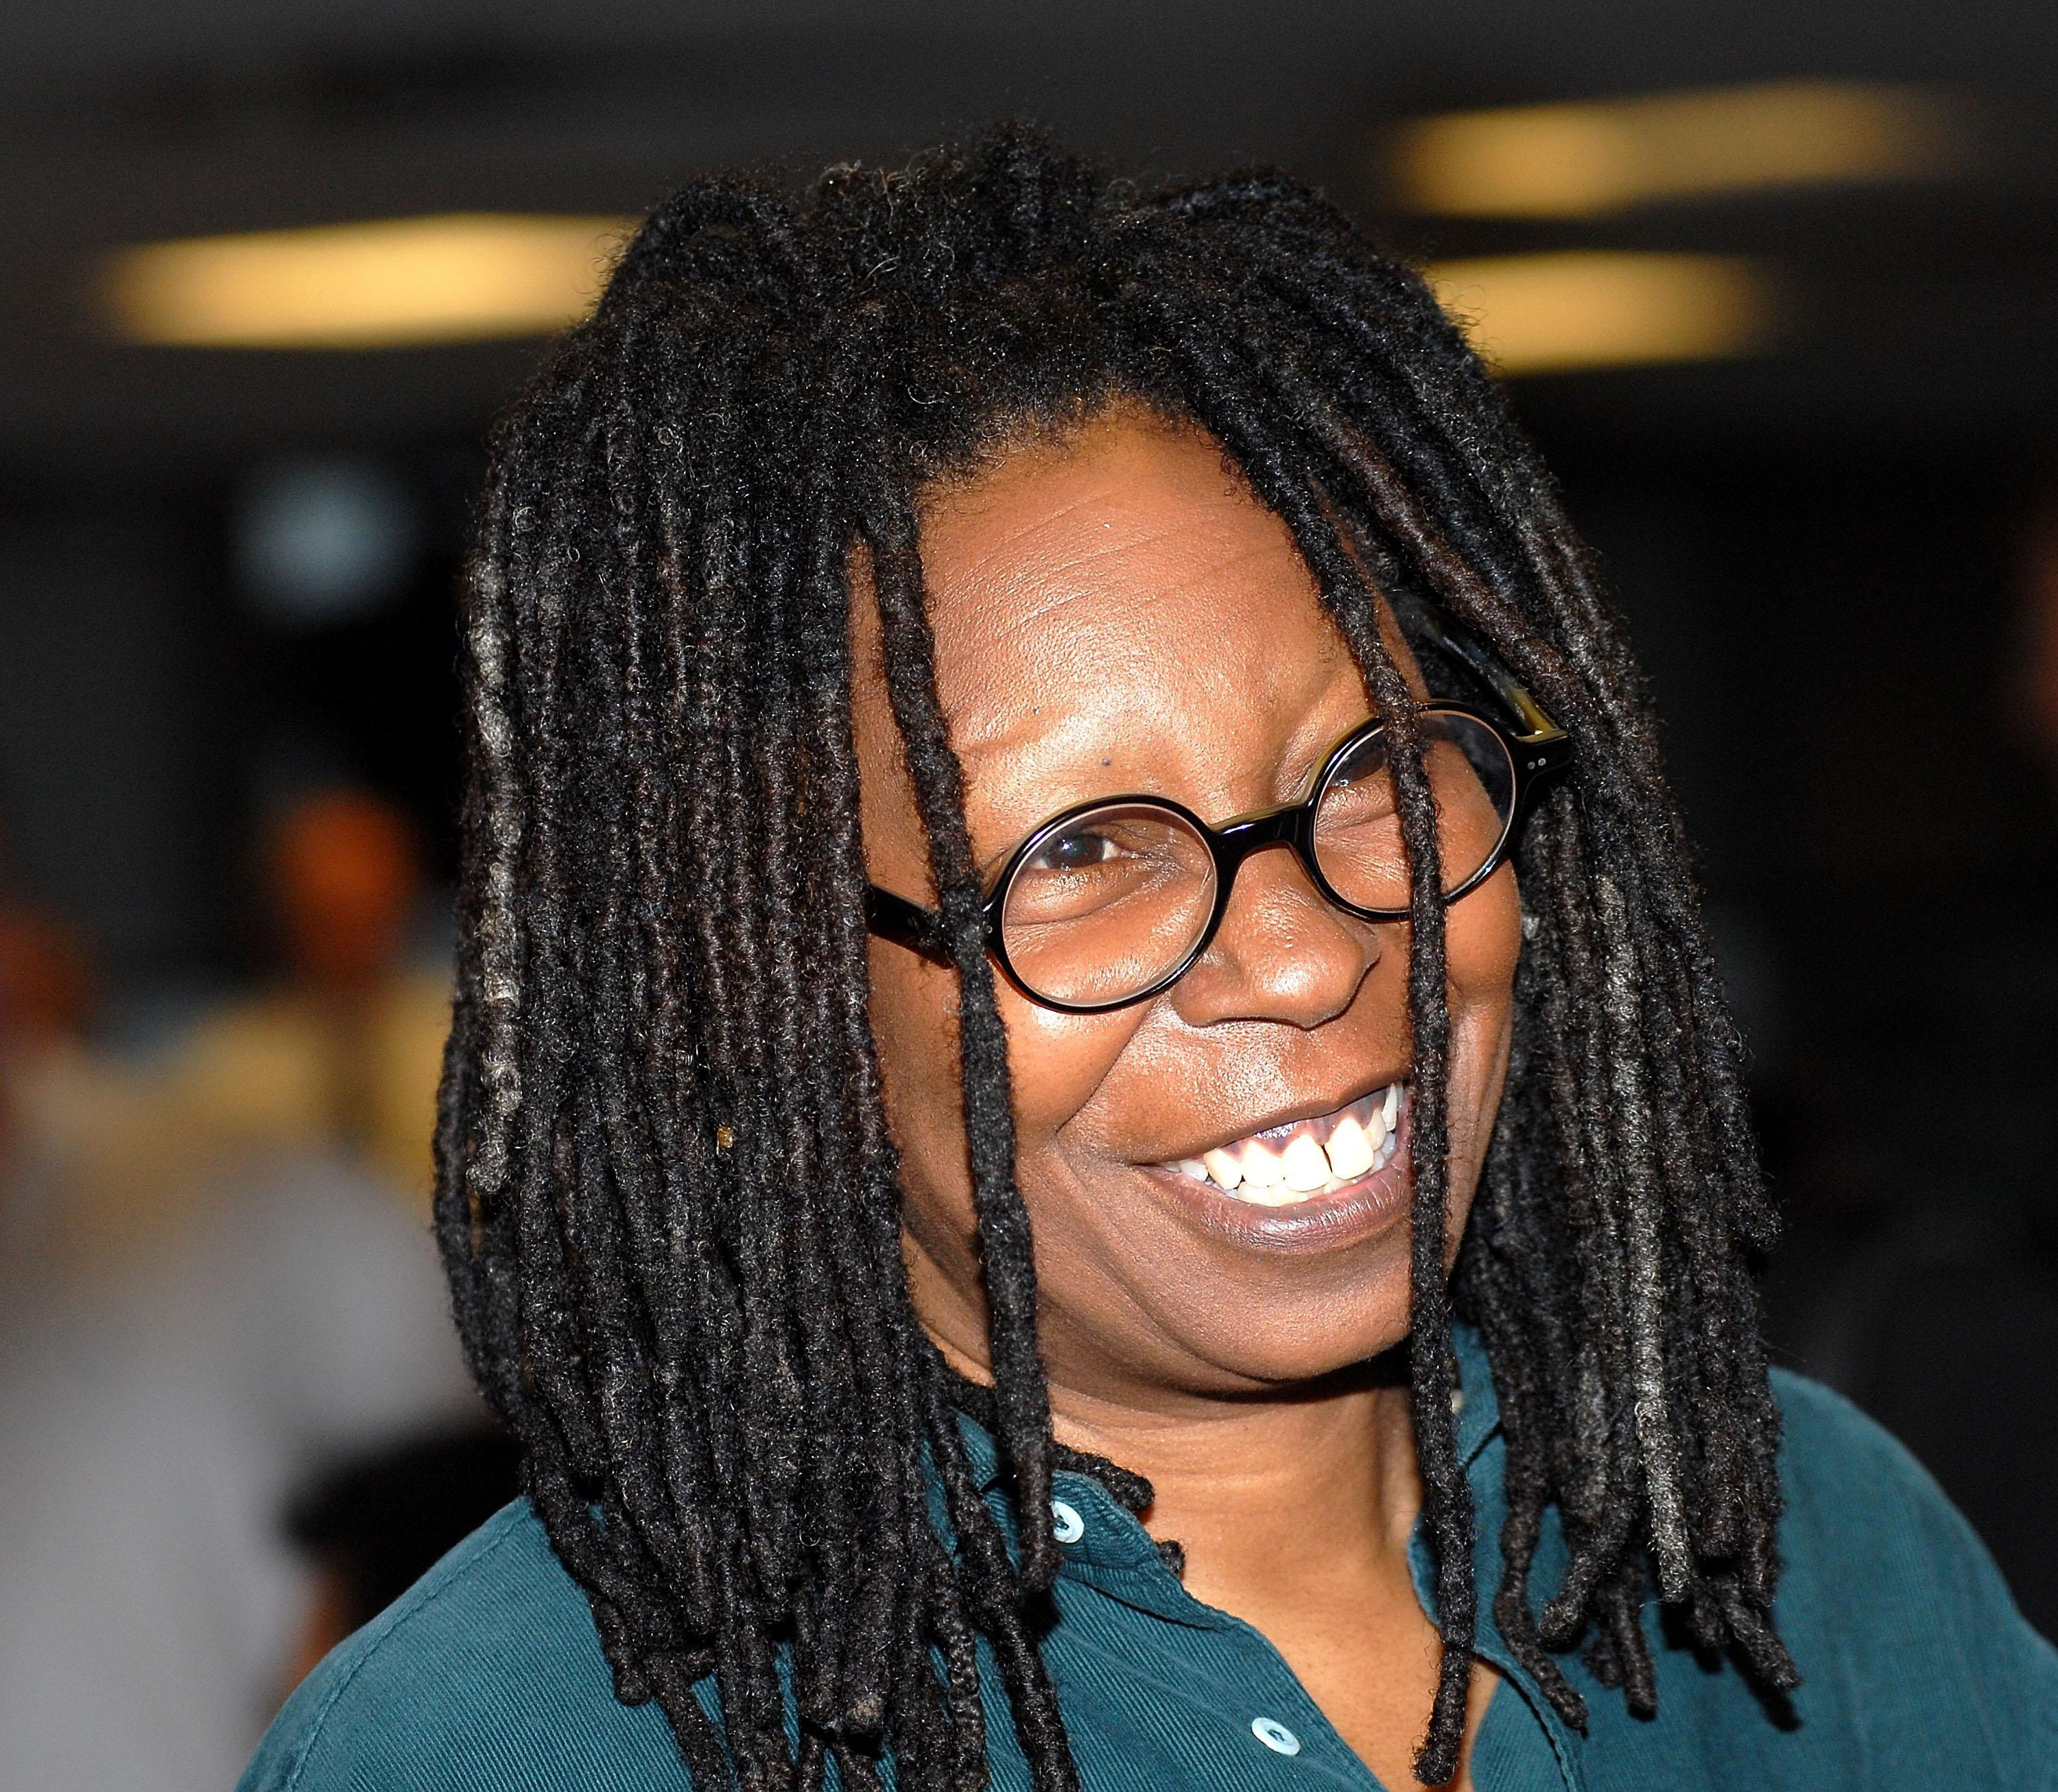 How old is Oscars 2019 host Whoopi Goldberg, what is her height and who is her daughter?